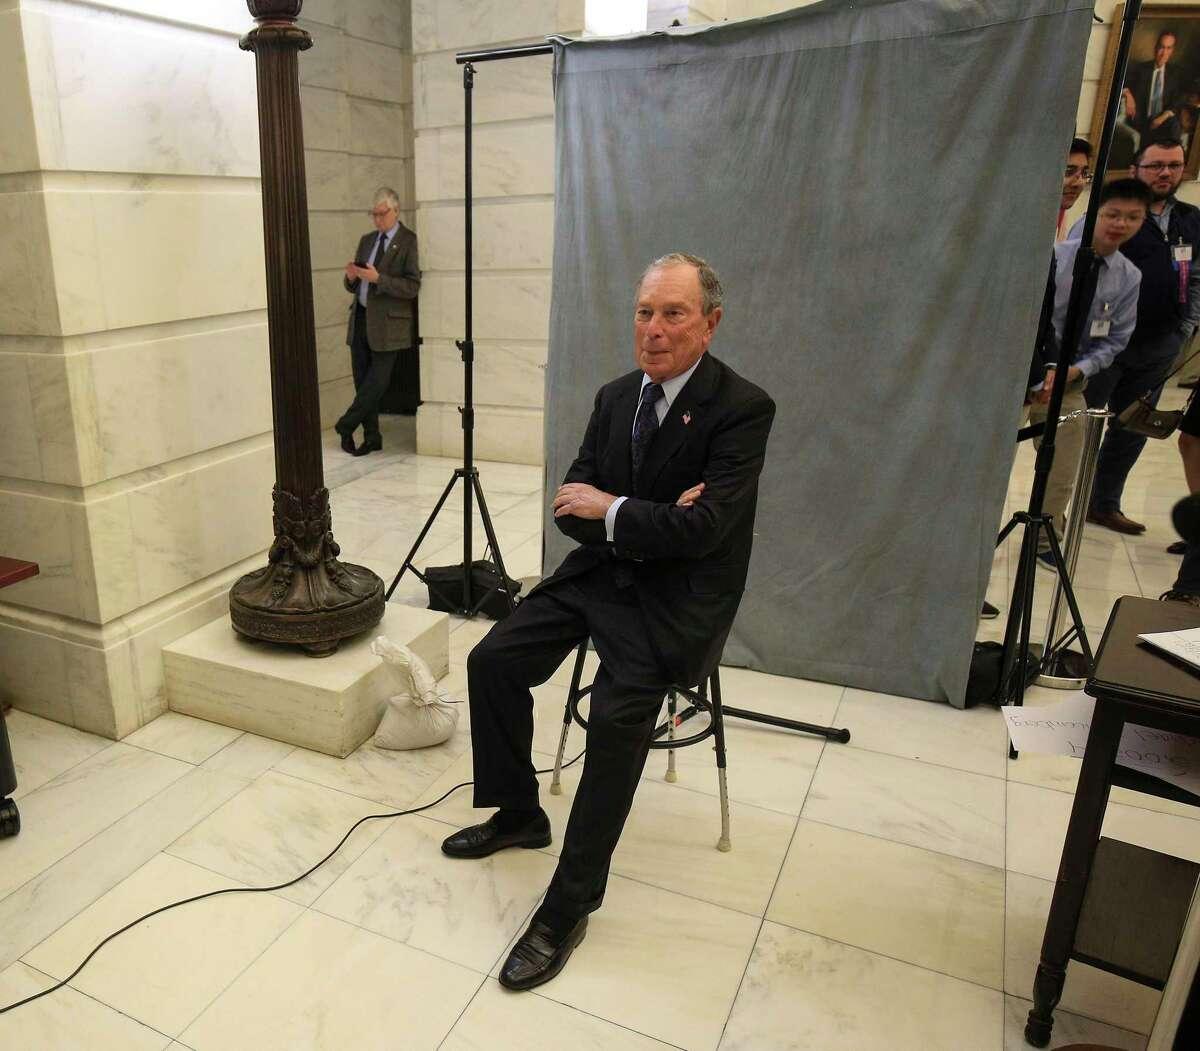 Former New York City Mayor Michael Bloomberg poses for his candidate photo as he files paperwork, Tuesday, Nov. 12, 2019, at the state Capitol in Little Rock, Ark., to appear on the ballot in Arkansas' March 3 presidential primary. Bloomberg hasn't formally announced a bid for the Democratic presidential nomination, but his trip to Arkansas is the latest indication that he is leaning toward a run. (Staton Breidenthal/The Arkansas Democrat-Gazette via AP)